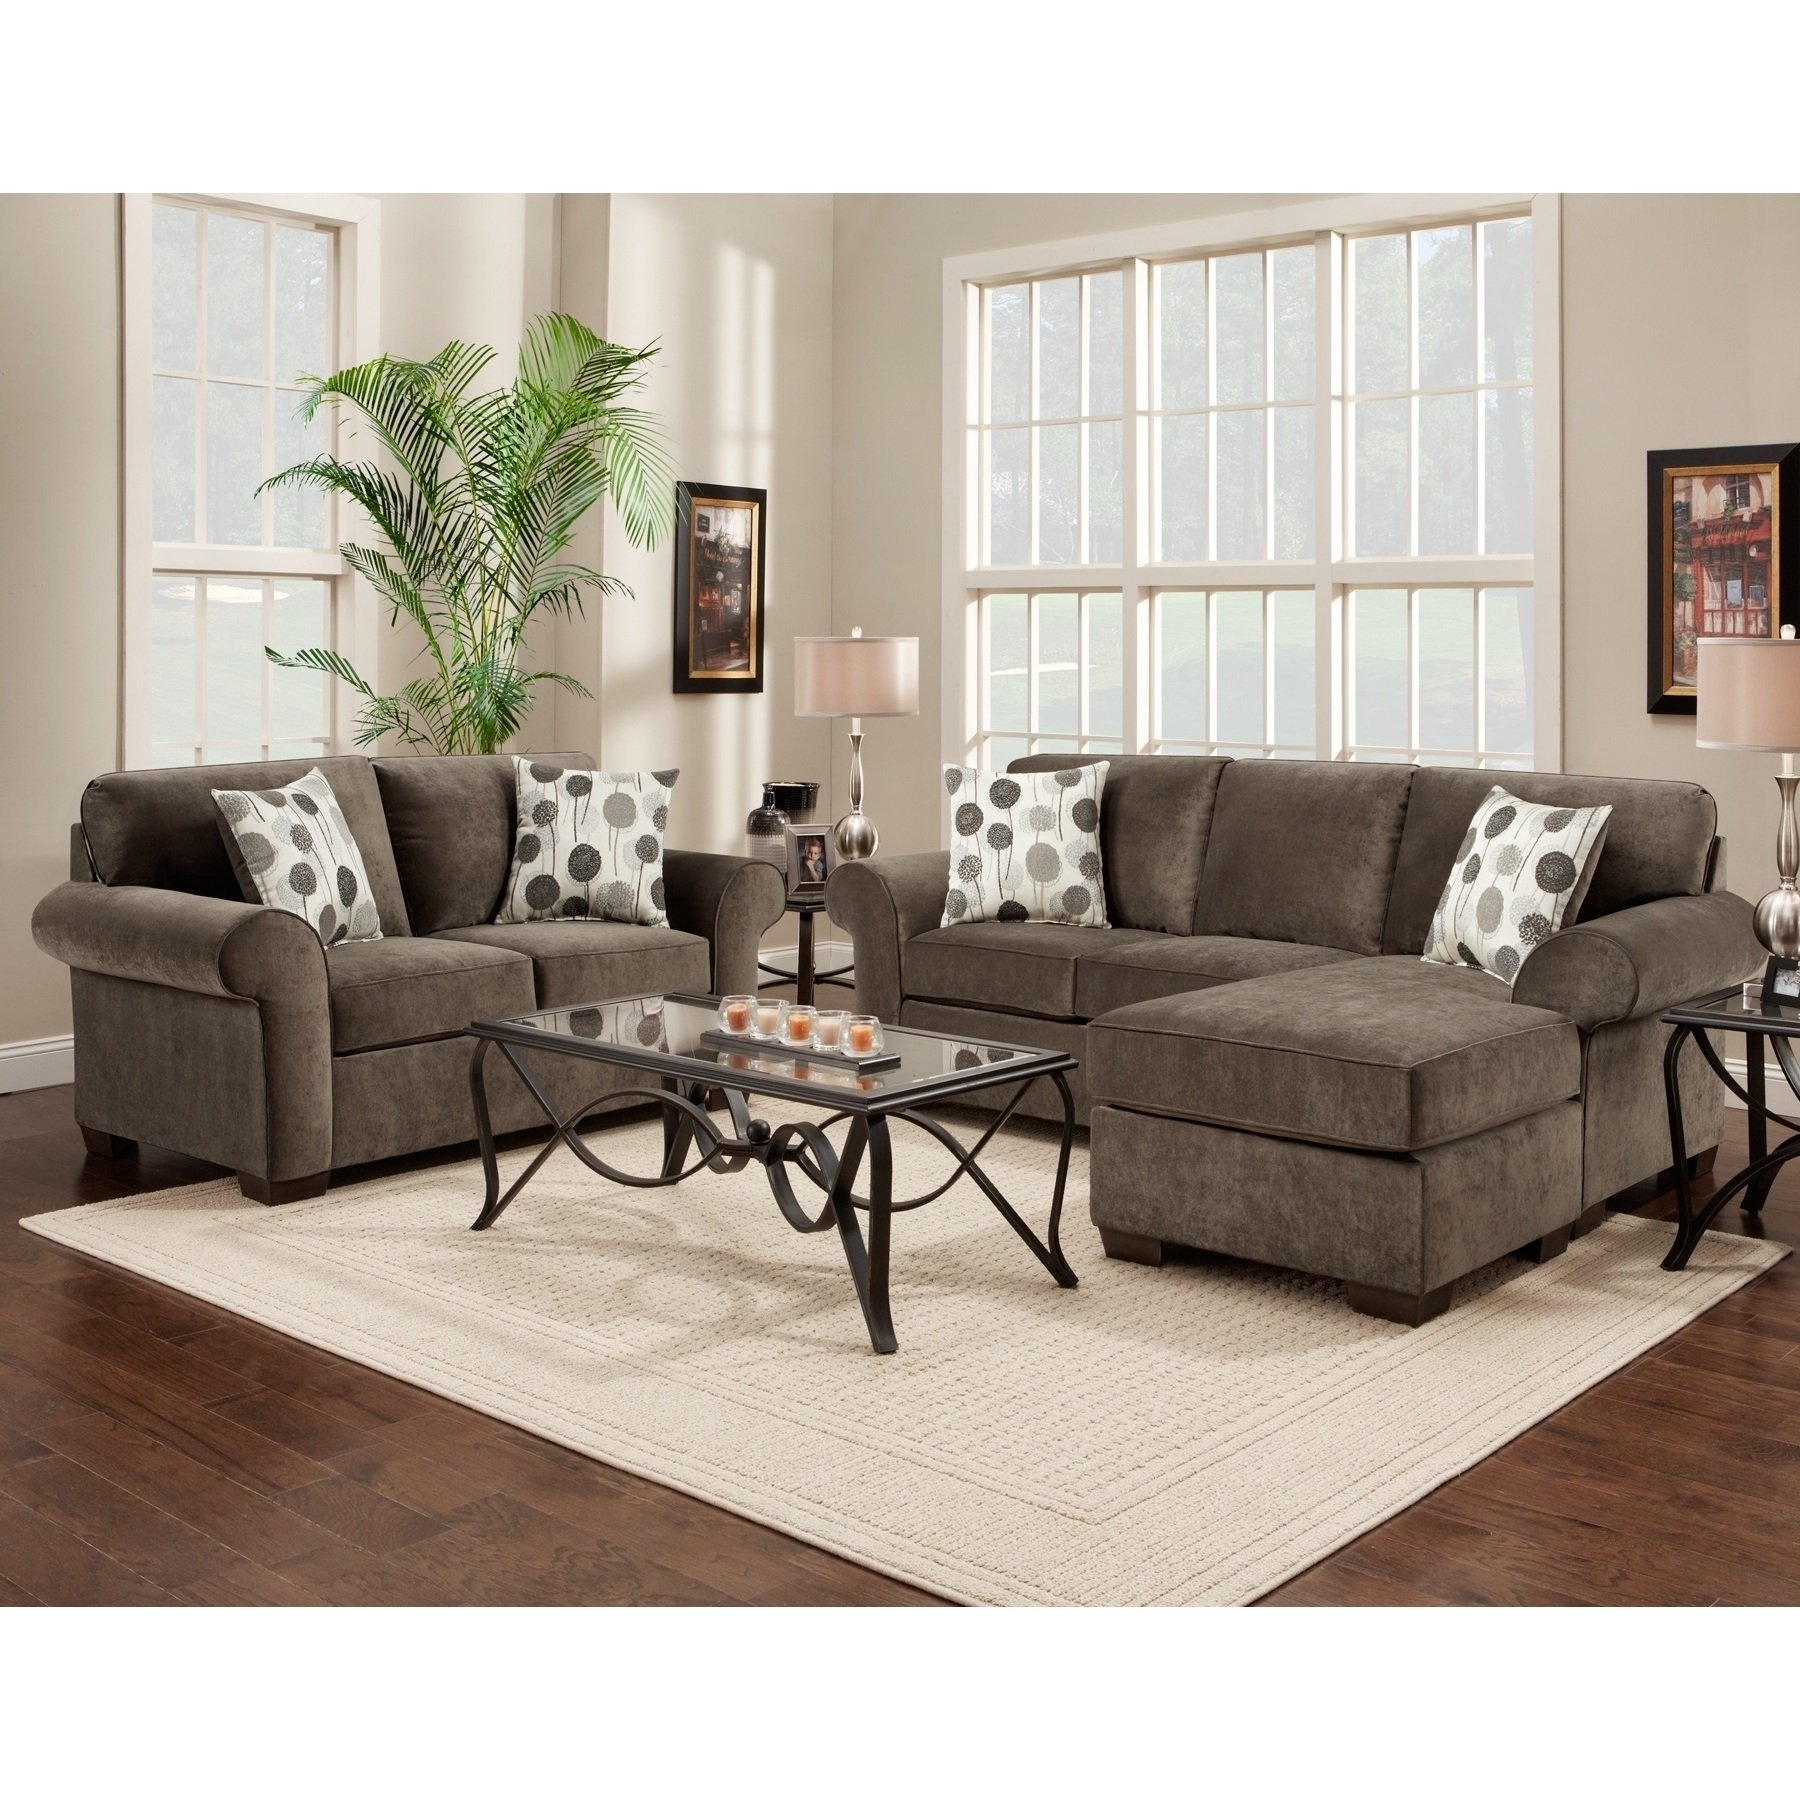 Loveseat Sectional   Whitecraftwoodard Mona Wicker Right Arm With Regard To Declan 3 Piece Power Reclining Sectionals With Right Facing Console Loveseat (View 10 of 25)